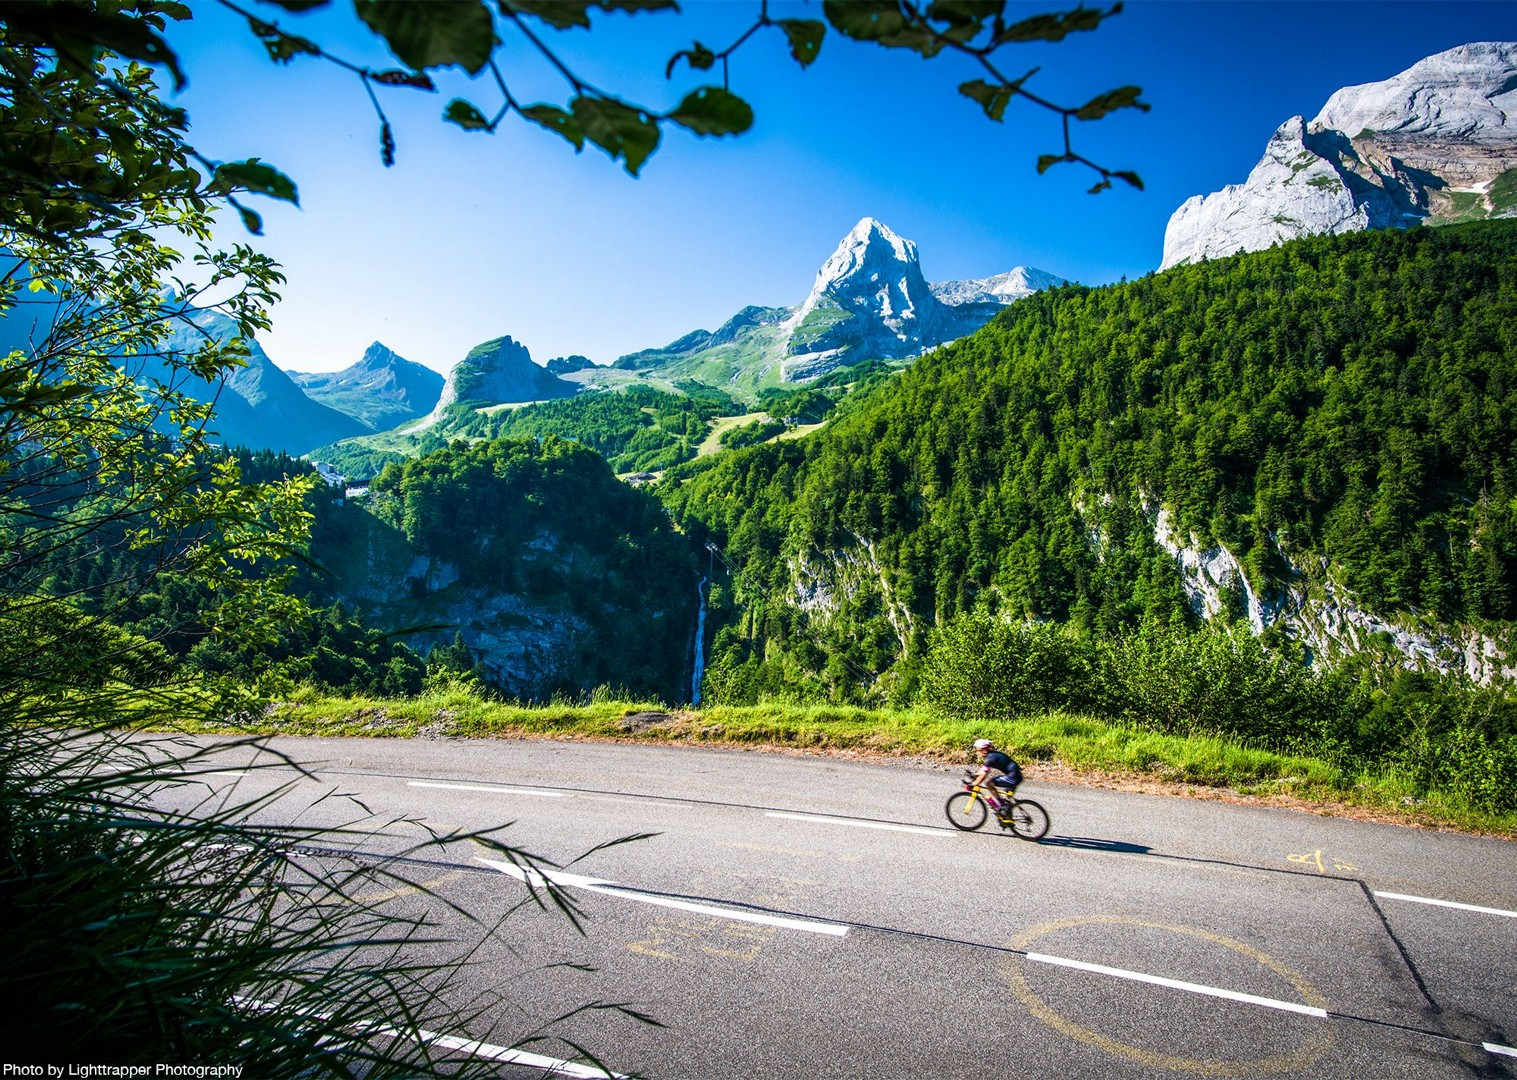 trans-pyrenees-challenge-guided-road-holiday-cycling-in-france.jpg - France - Trans Pyrenees Challenge - Guided Road Cycling Holiday - Road Cycling